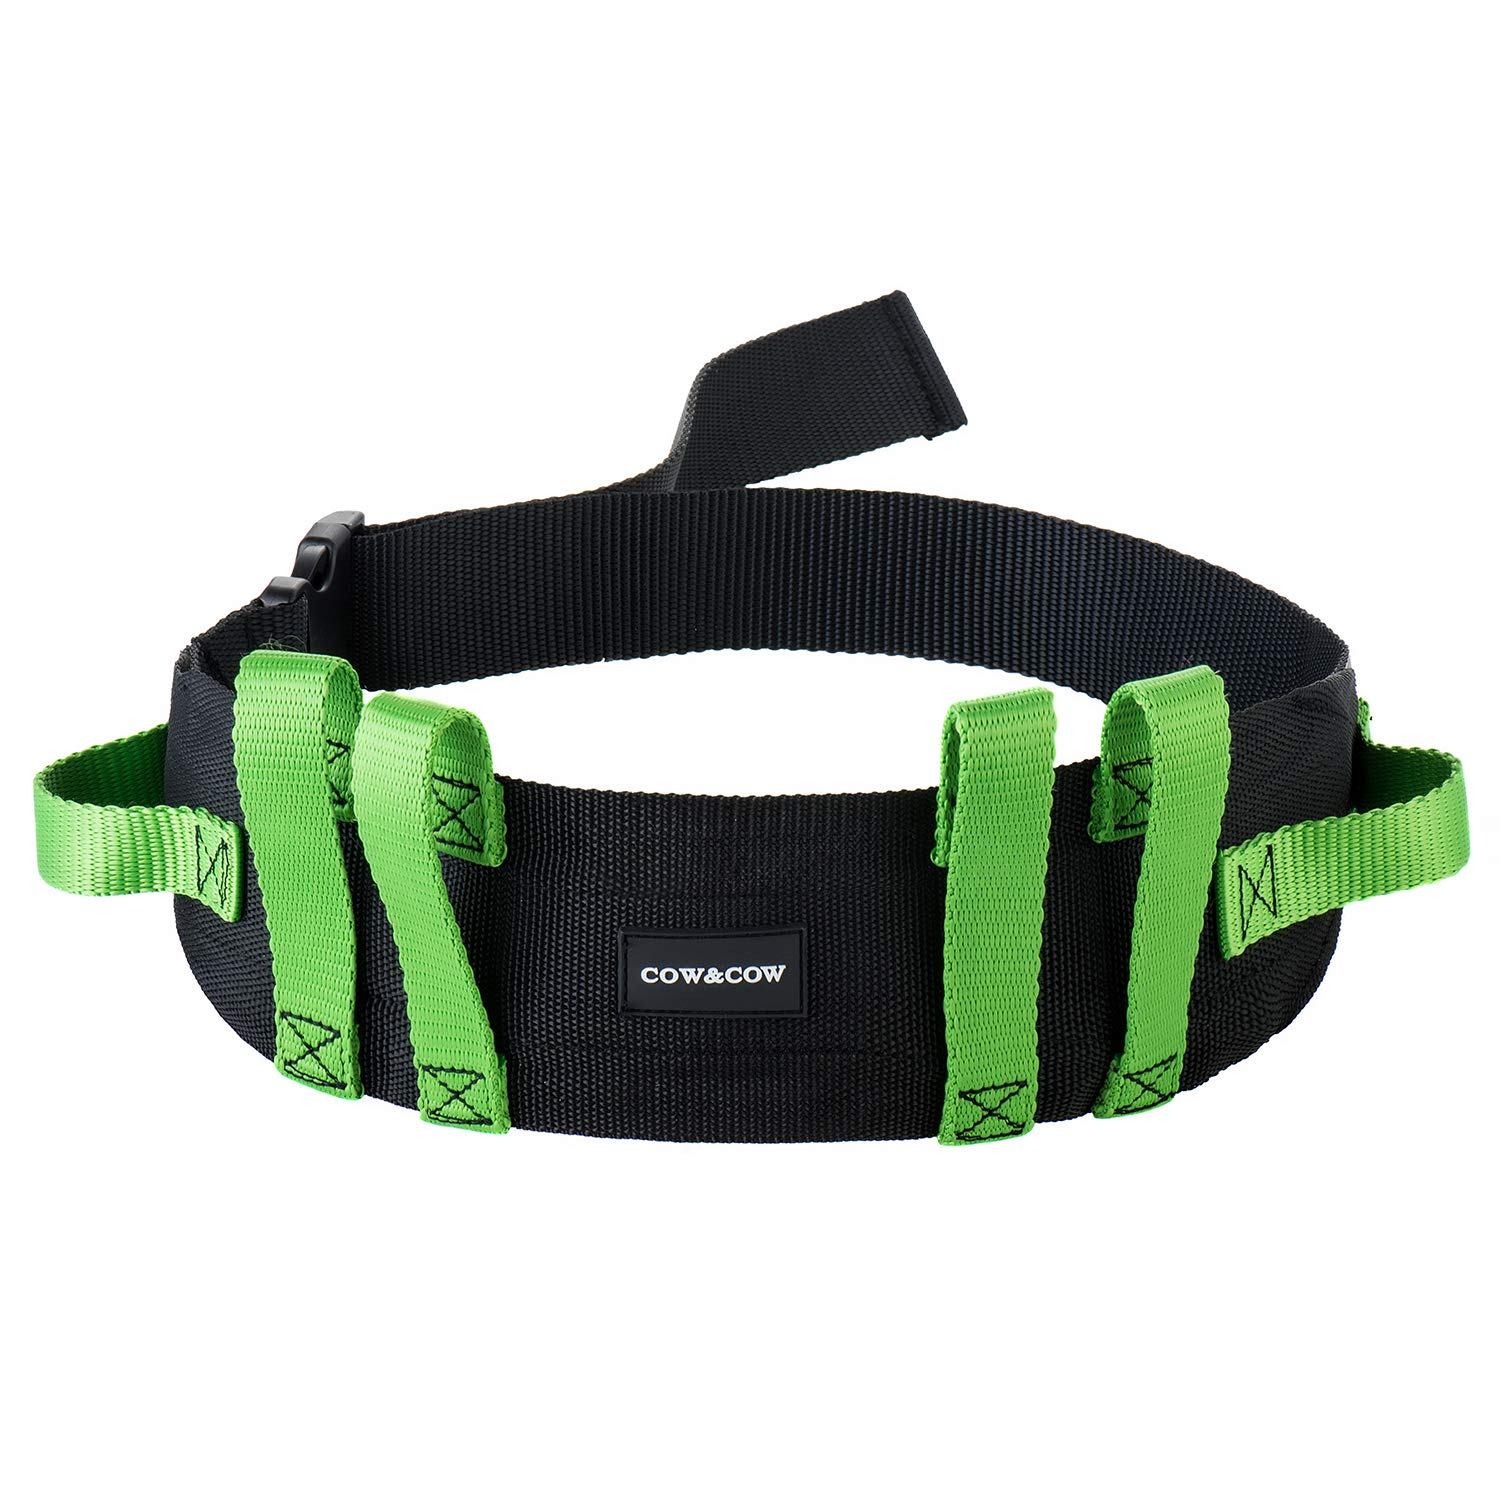 COW&COW Gait Belt (28inch-52inch) - with 6 Handles and Quick Release Buckle - Transfer Walking and Standing Assist Aid for Homecare,Nurse,Physical Therapy(Green)